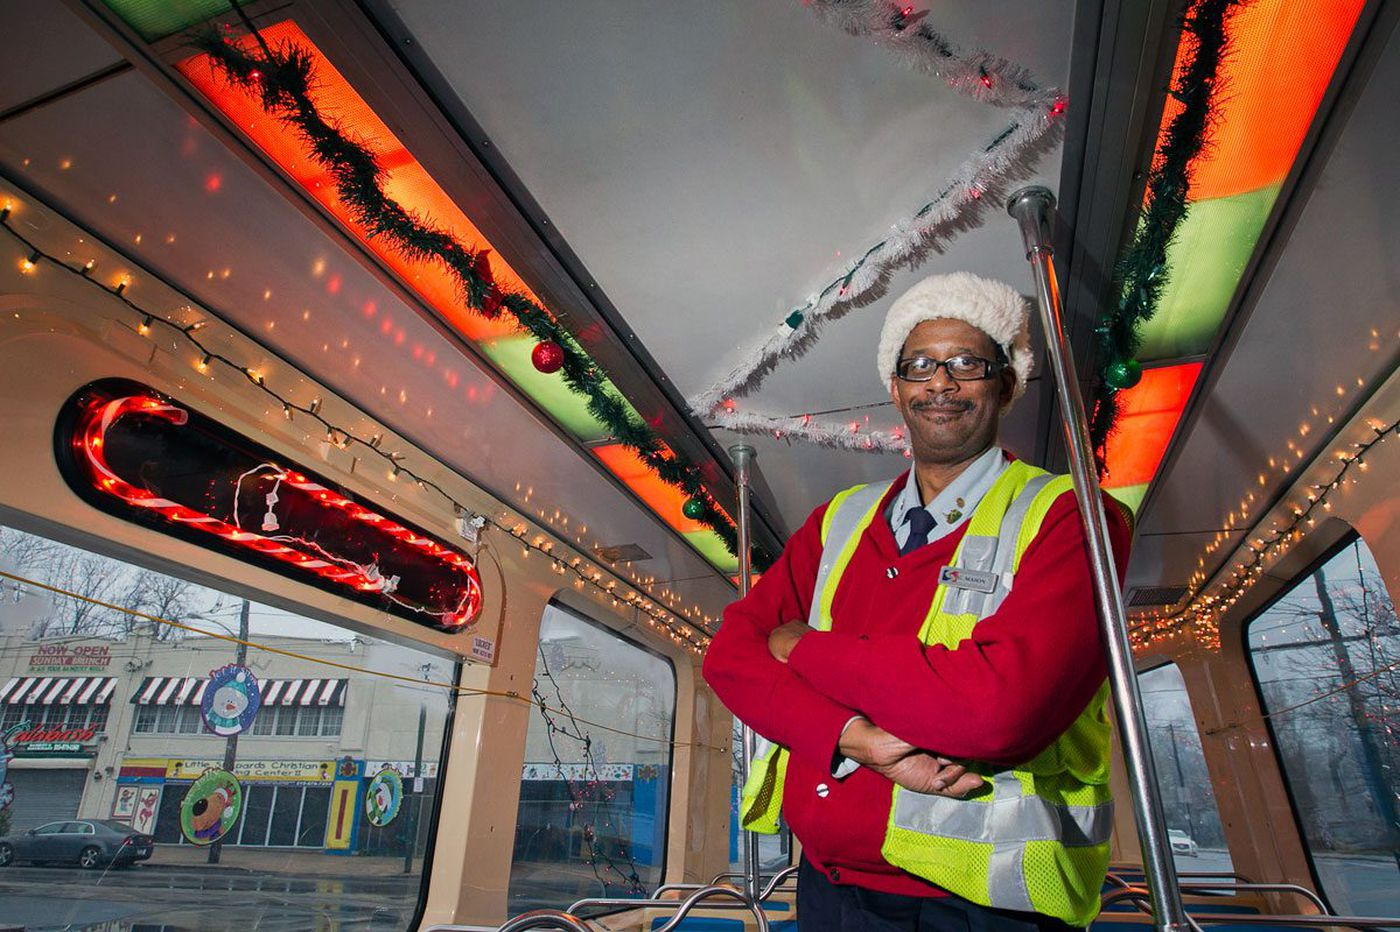 SEPTA's decorated holiday trolleys return